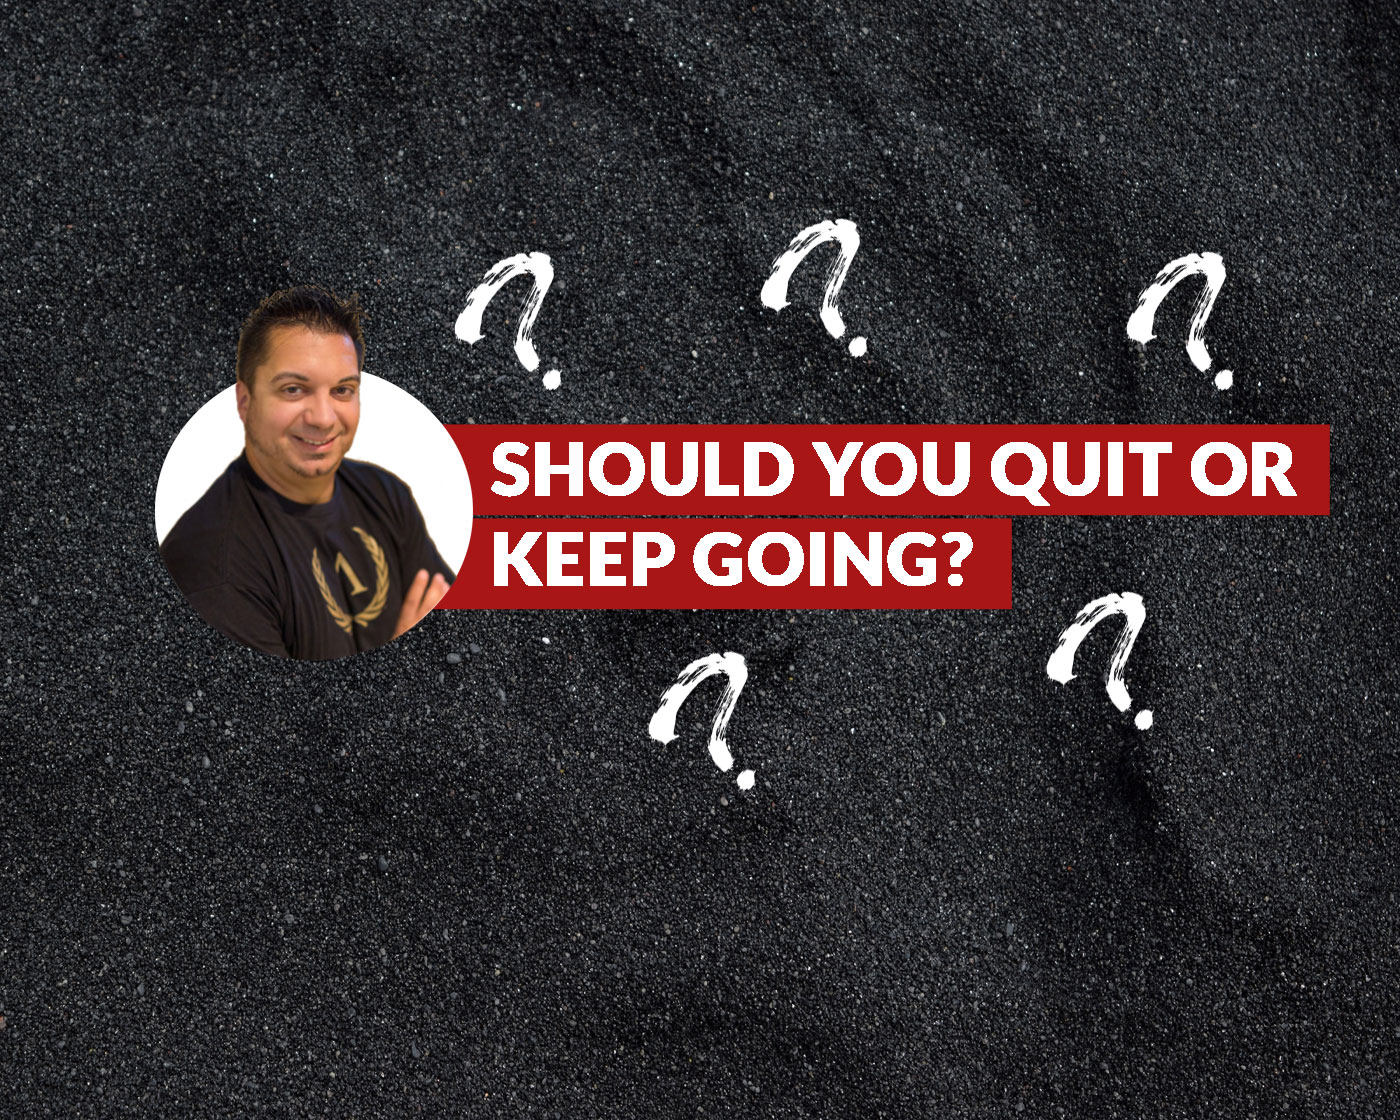 Should You Quit Or Keep Going?